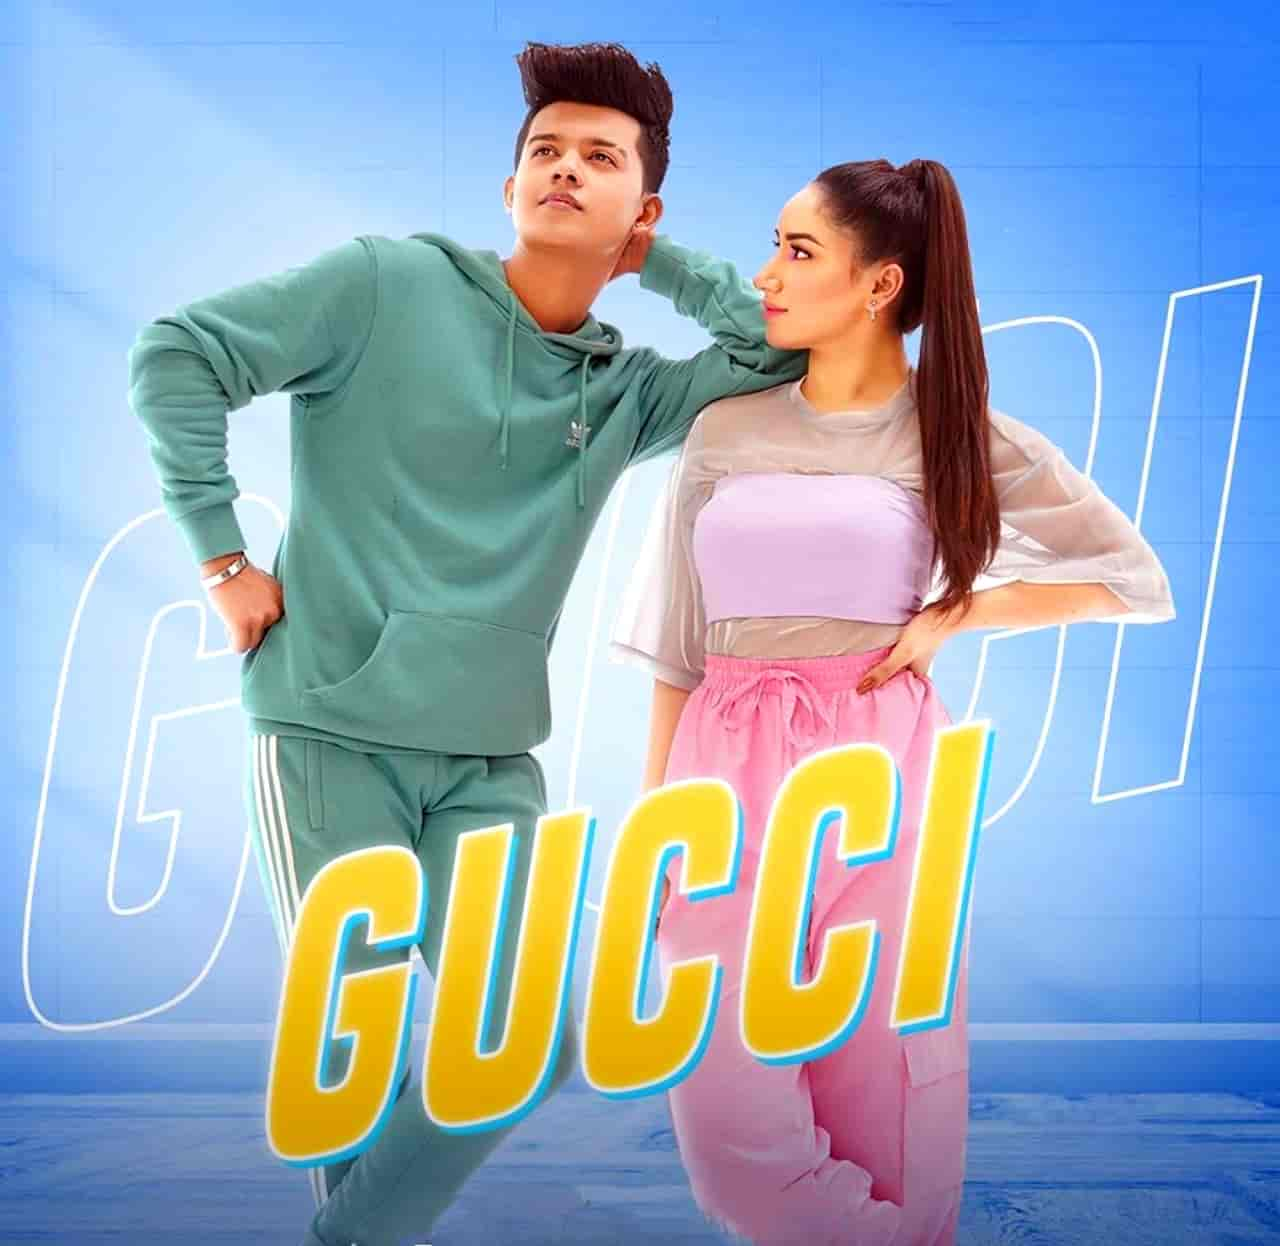 Gucci Song Image Features Aroob Khan and Riyaz Aly